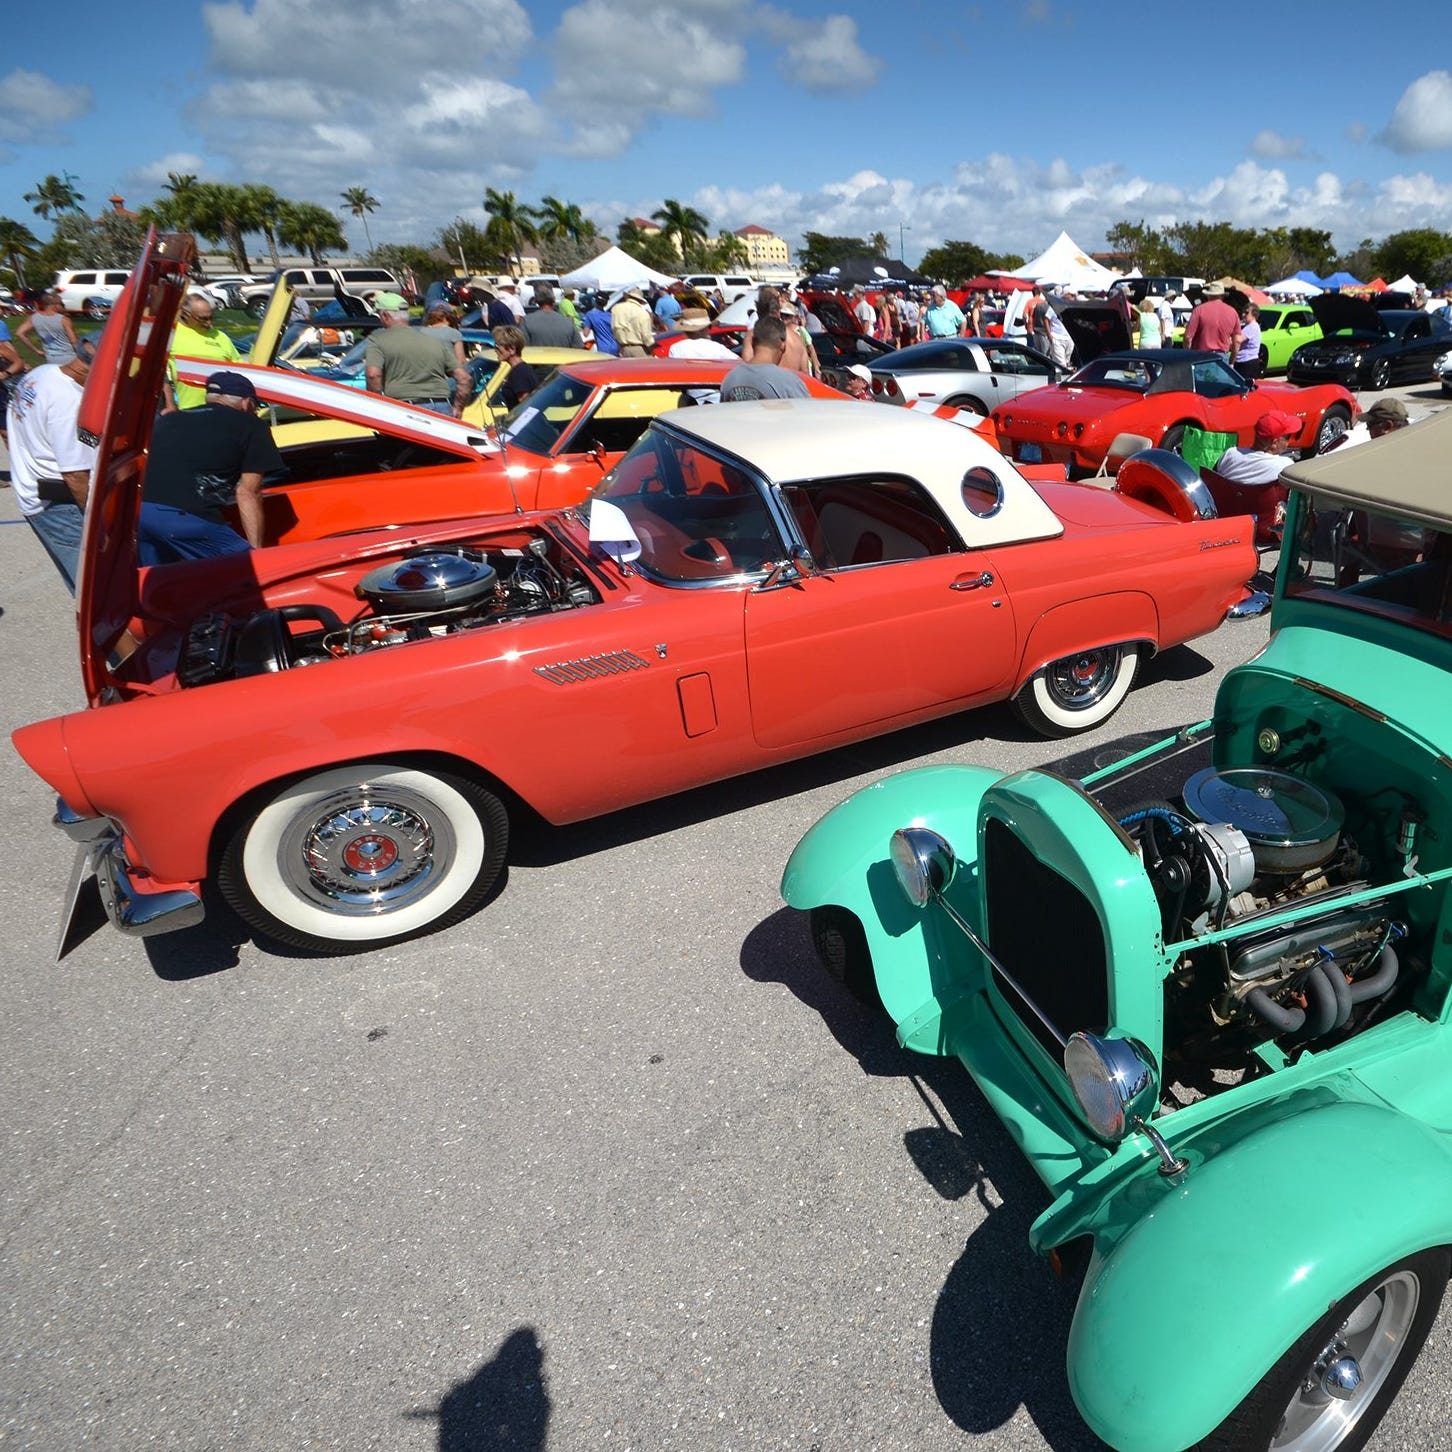 'REV'ere: Kiwanis car show brings thousands to Veterans' Park